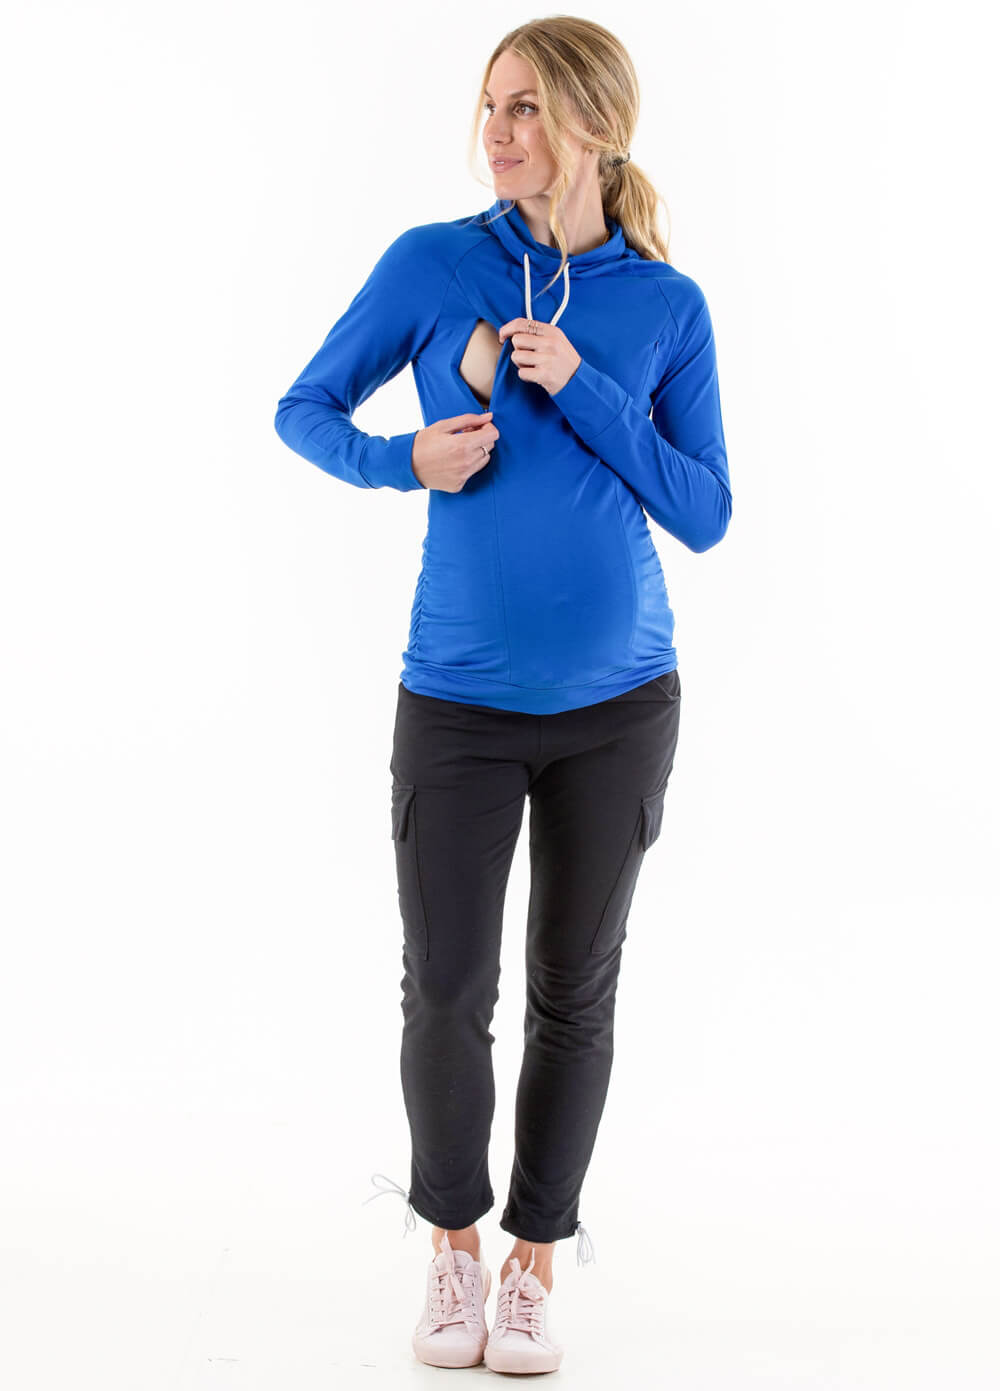 Ayette Cowl Neck Maternity Nursing Pullover in Blue by Lait & Co